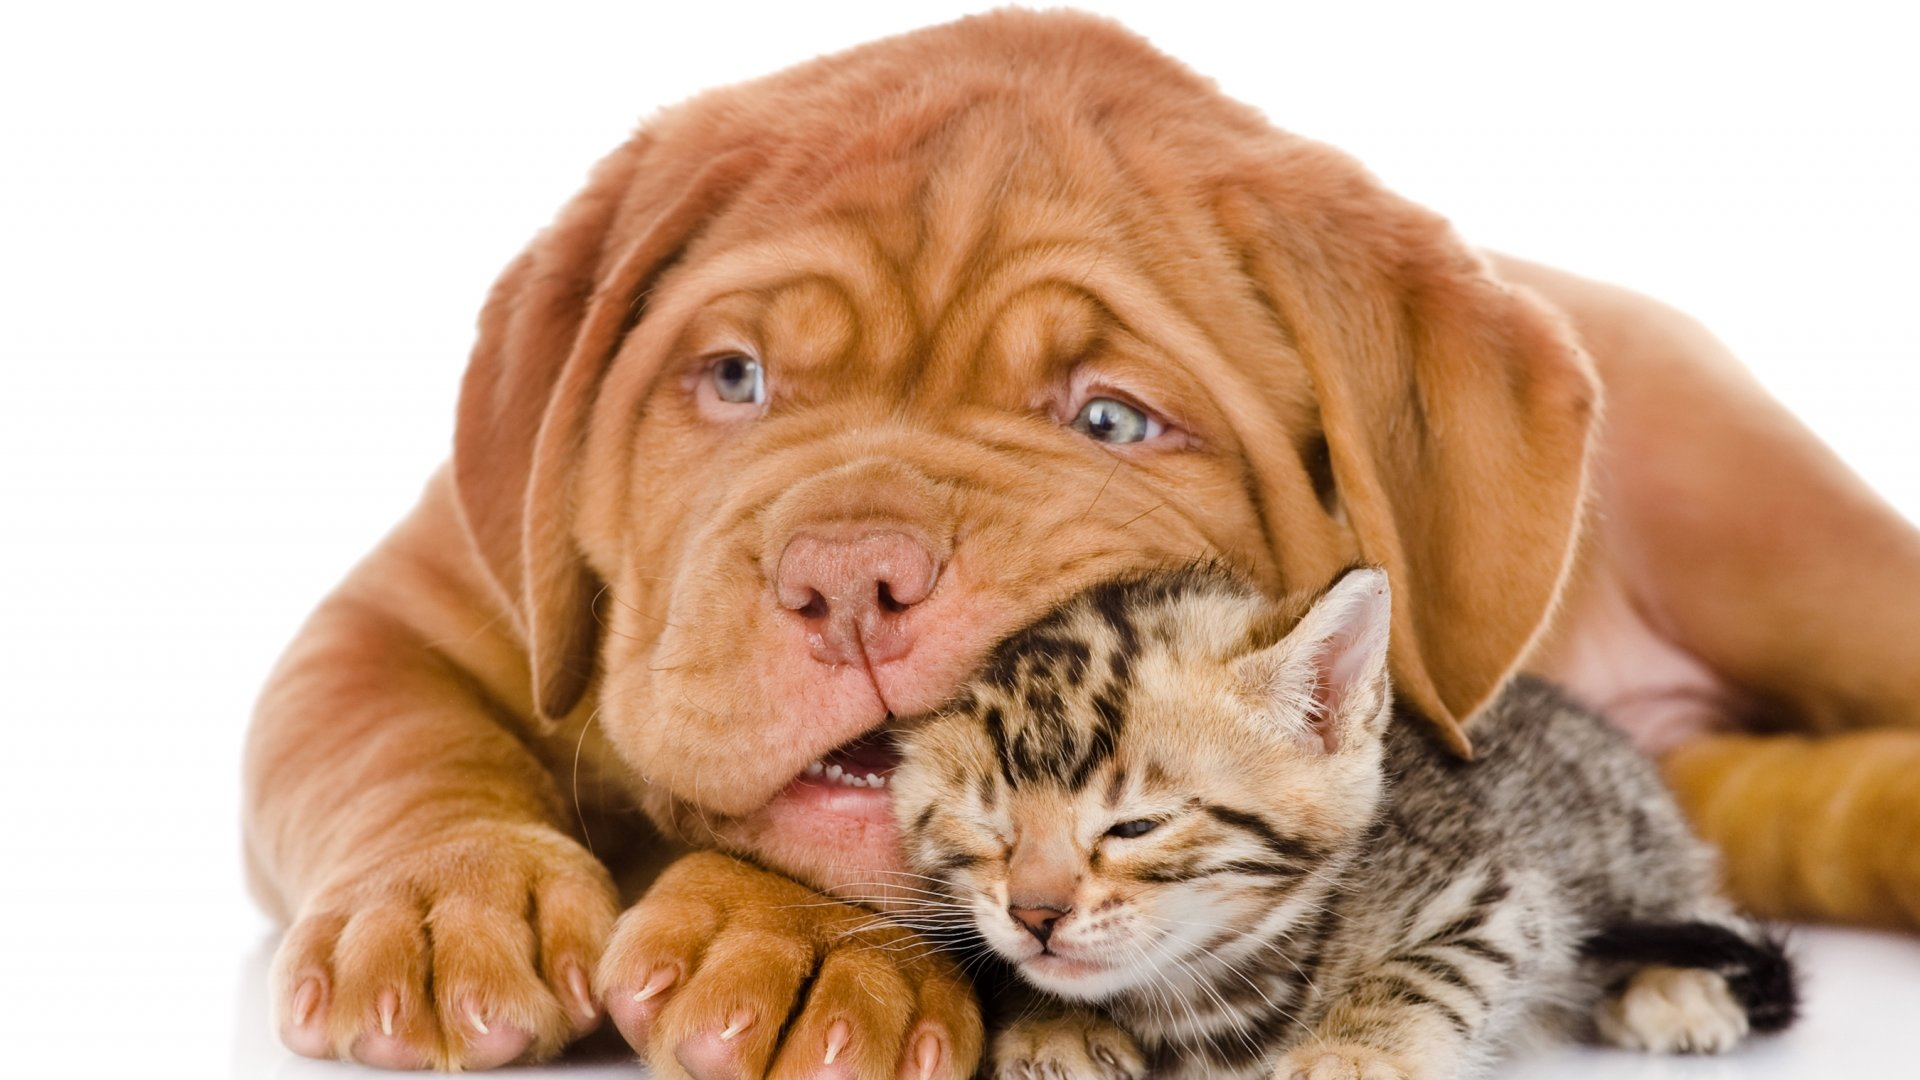 Cat And Dog Wallpapers X Full Hd P Desktop